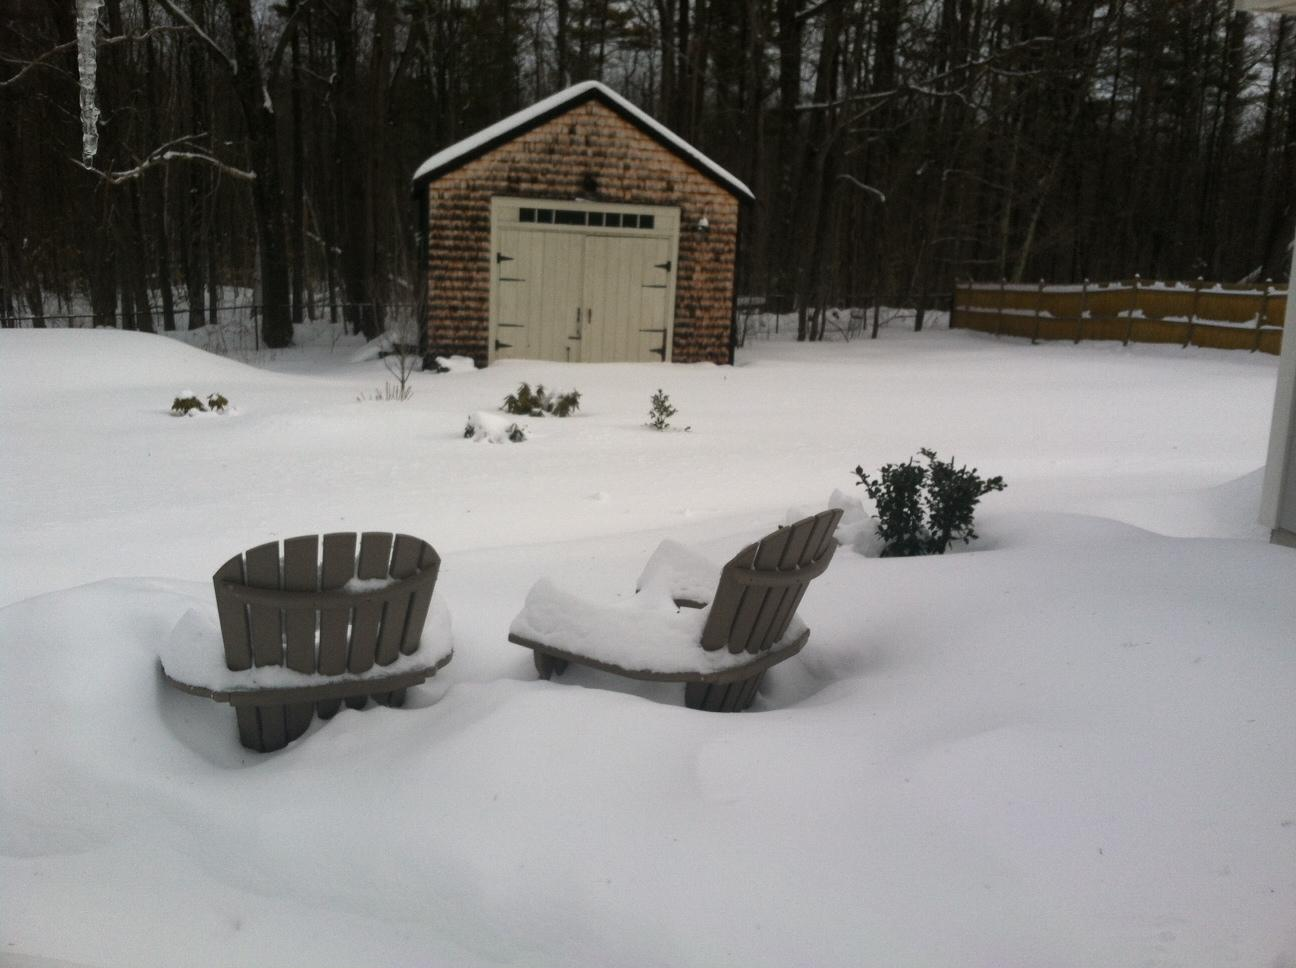 The Subtle Beauty Of Snow Covered Patio Furniture  New. Patio Furniture At Cheap Prices. Backyard Landscaping Ideas Atlanta. Round Outdoor Bistro Chair Cushions. Home Decorators Collection Patio Sling Chair. Interlocking Pavers For Patio. Patio Furniture Clearance Fortunoff. Plastic Patio Chair Feet. Plastic Outdoor Bar Furniture